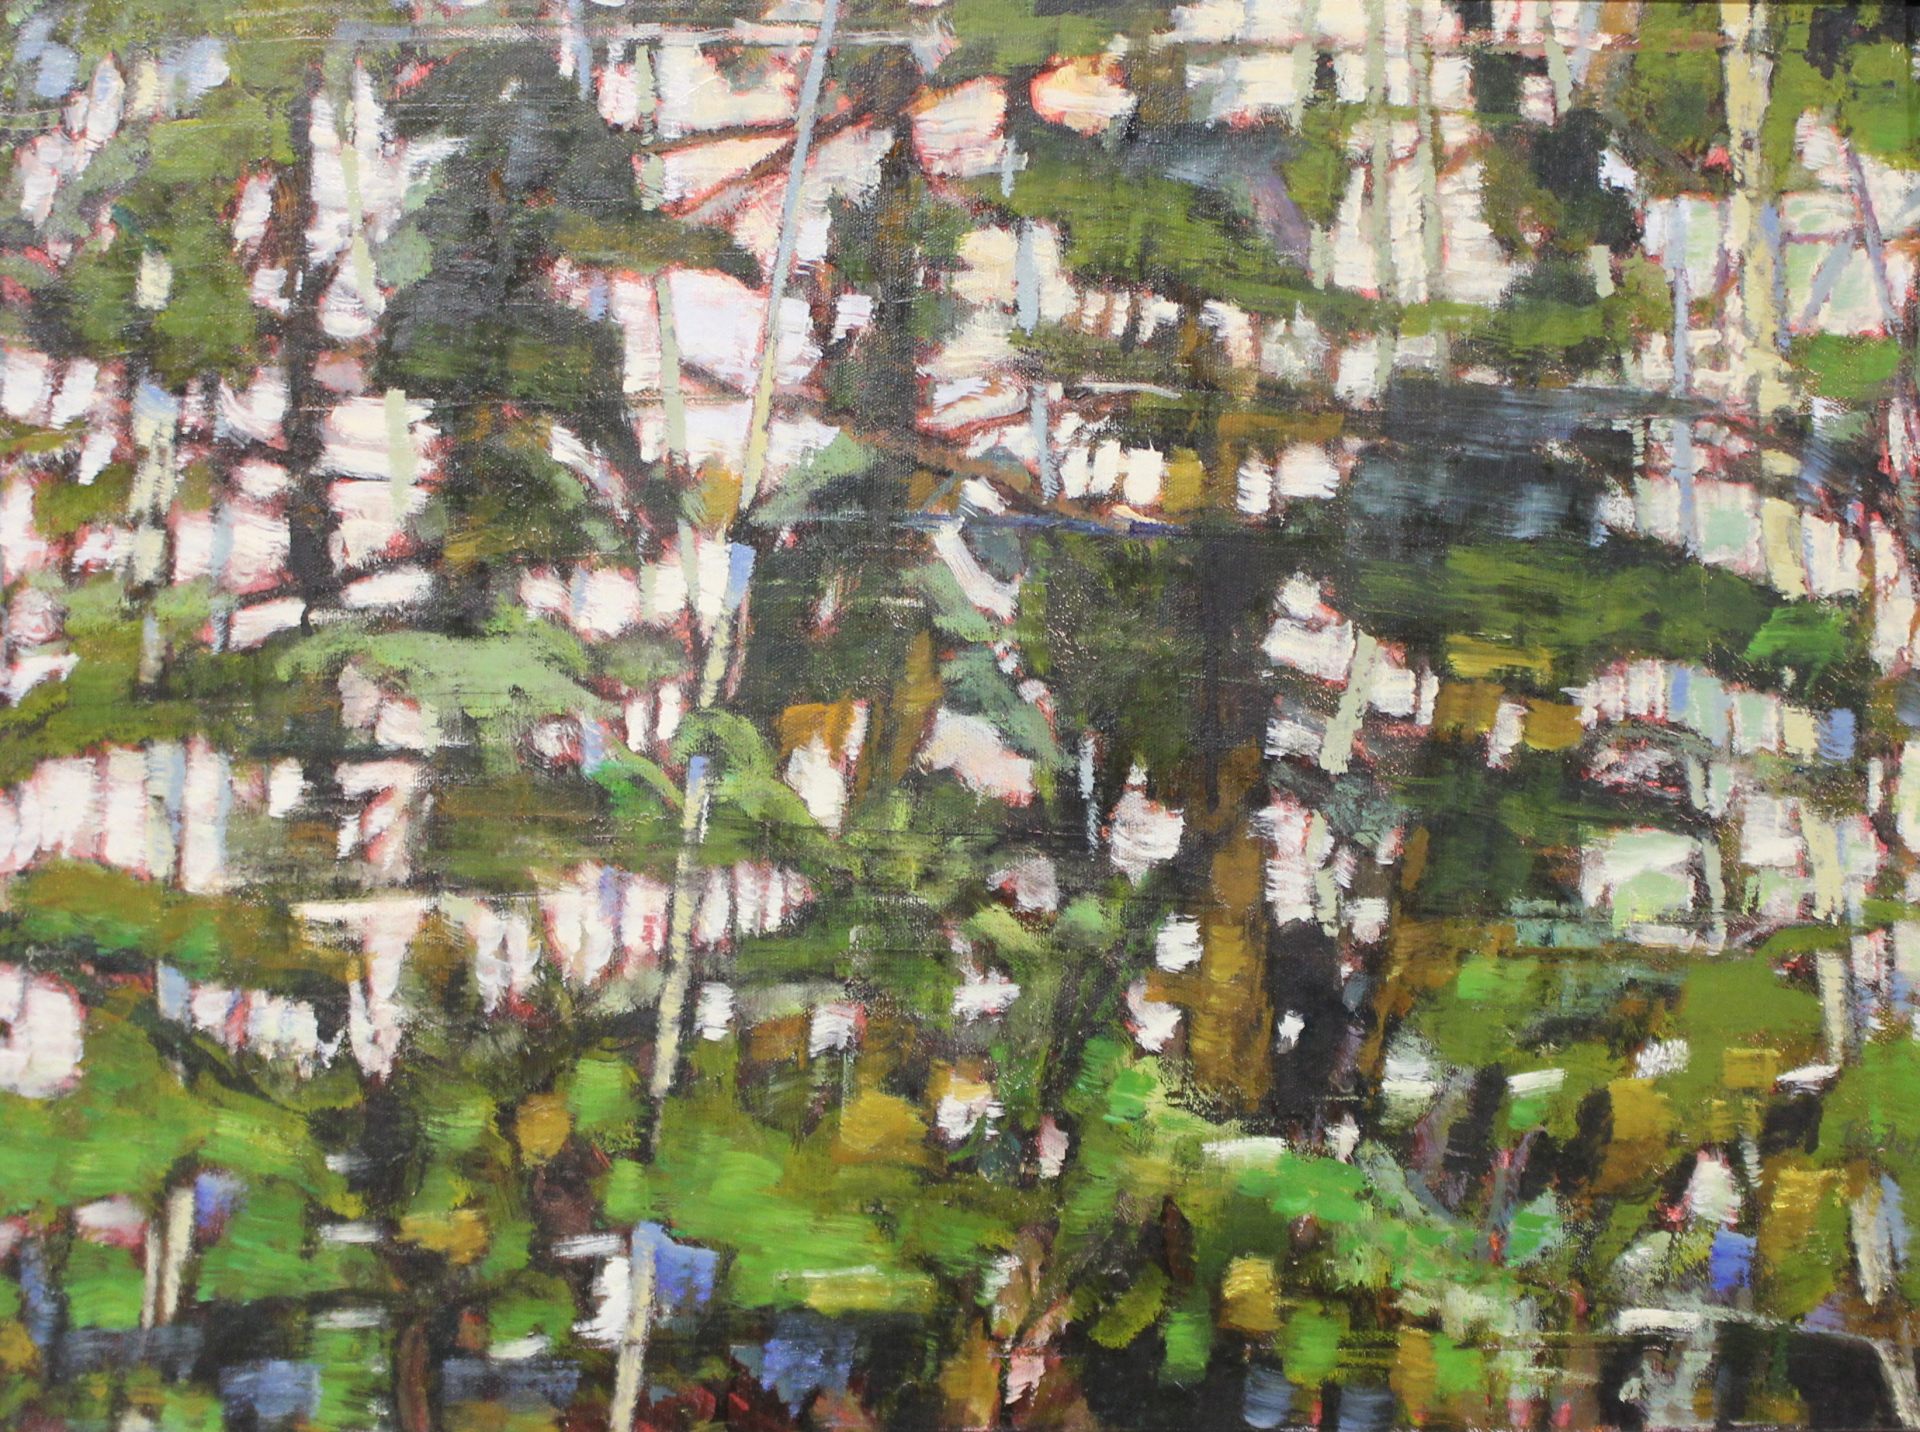 FOREST BLUR STUDY 2012 - 18 X 24 - OIL ON CANVAS - 2012